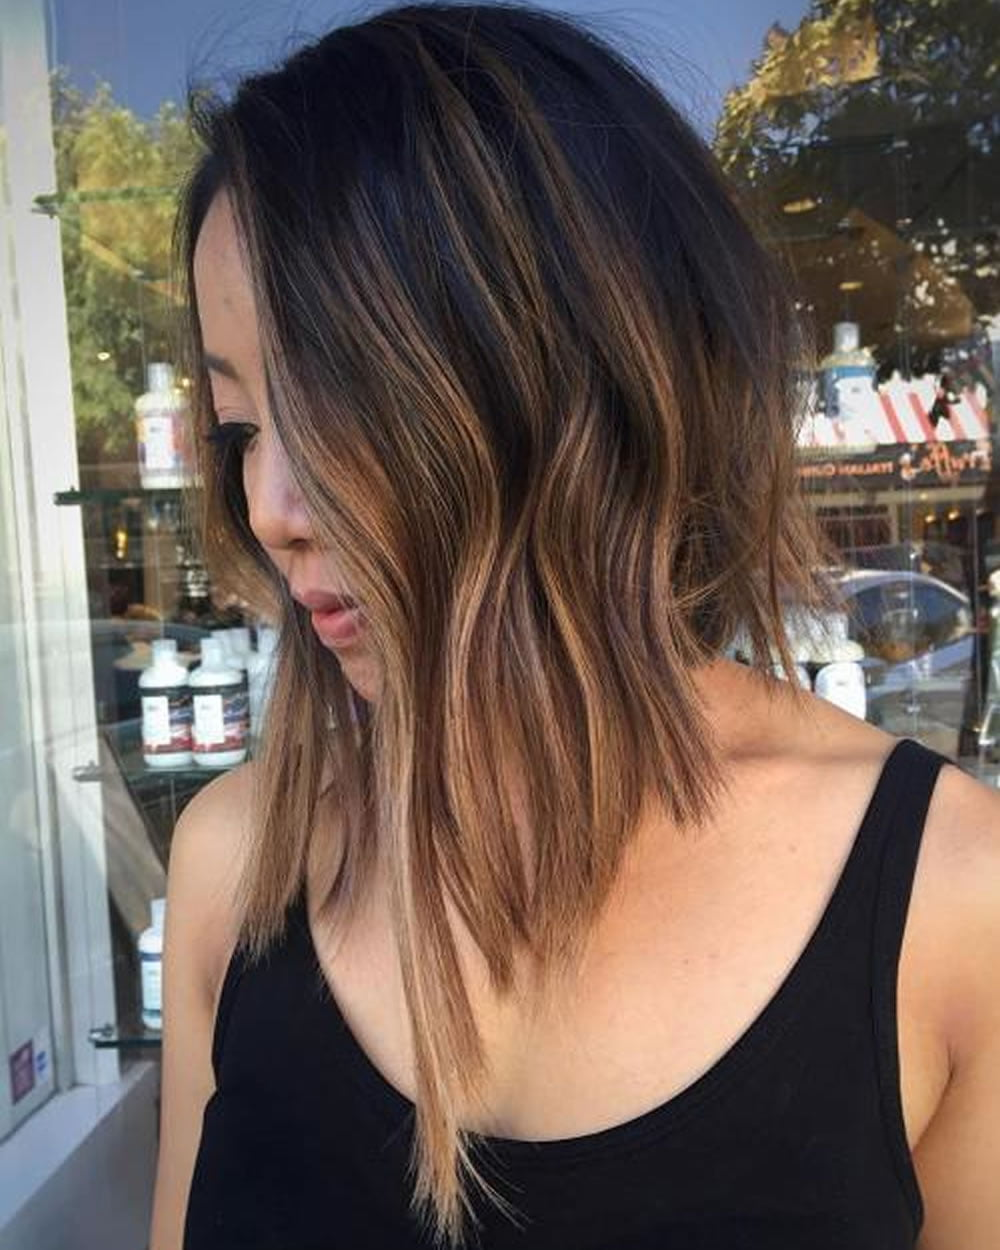 Trendy long bob hair